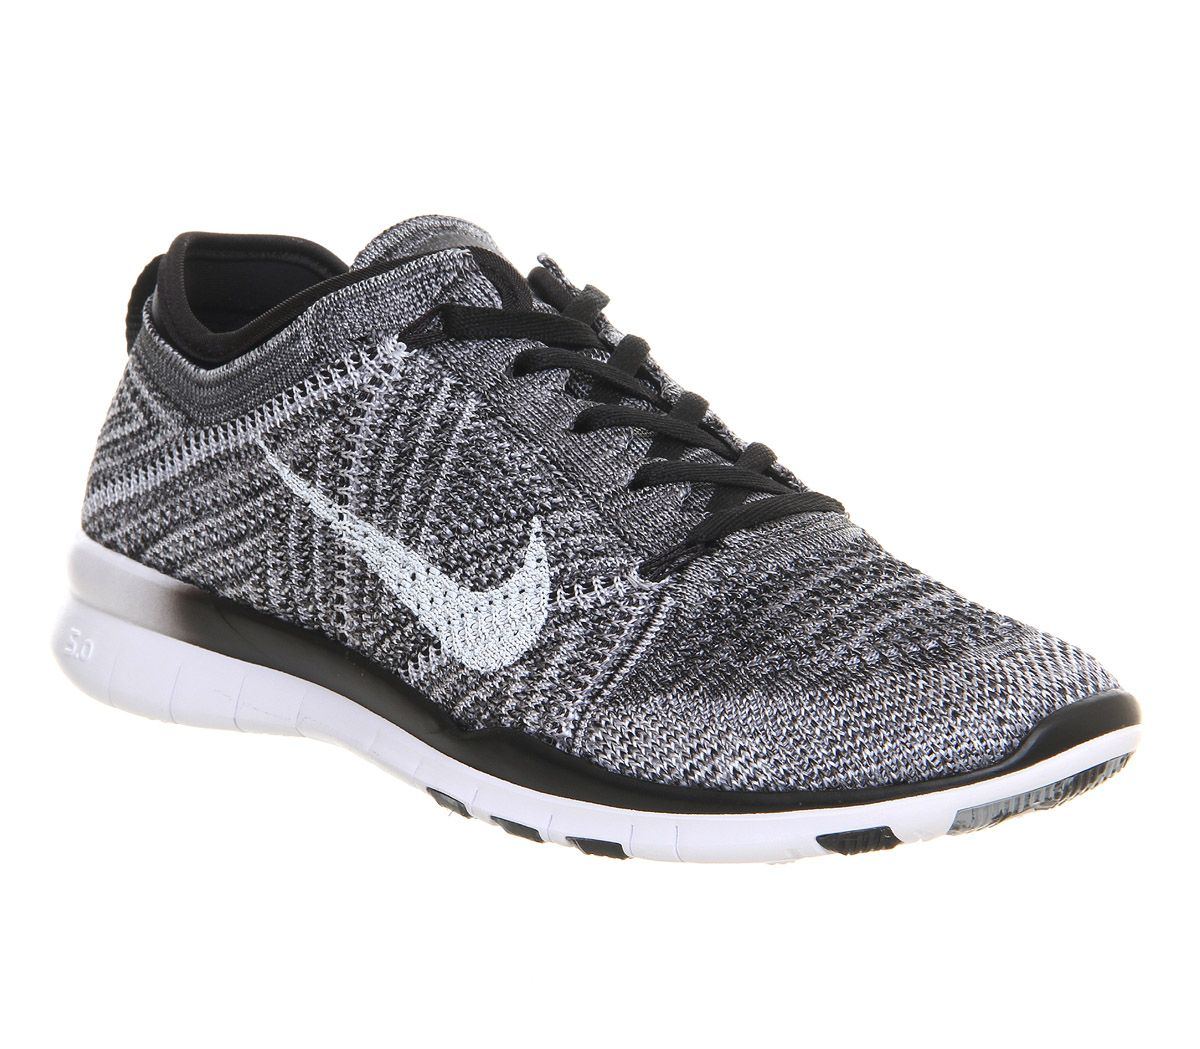 Free TR Flyknit by Nike. With an all new flyknit upper, the Free Tr Flyknit  from Nike is a women's running shoe with a woven one piece upper featuring  both ...